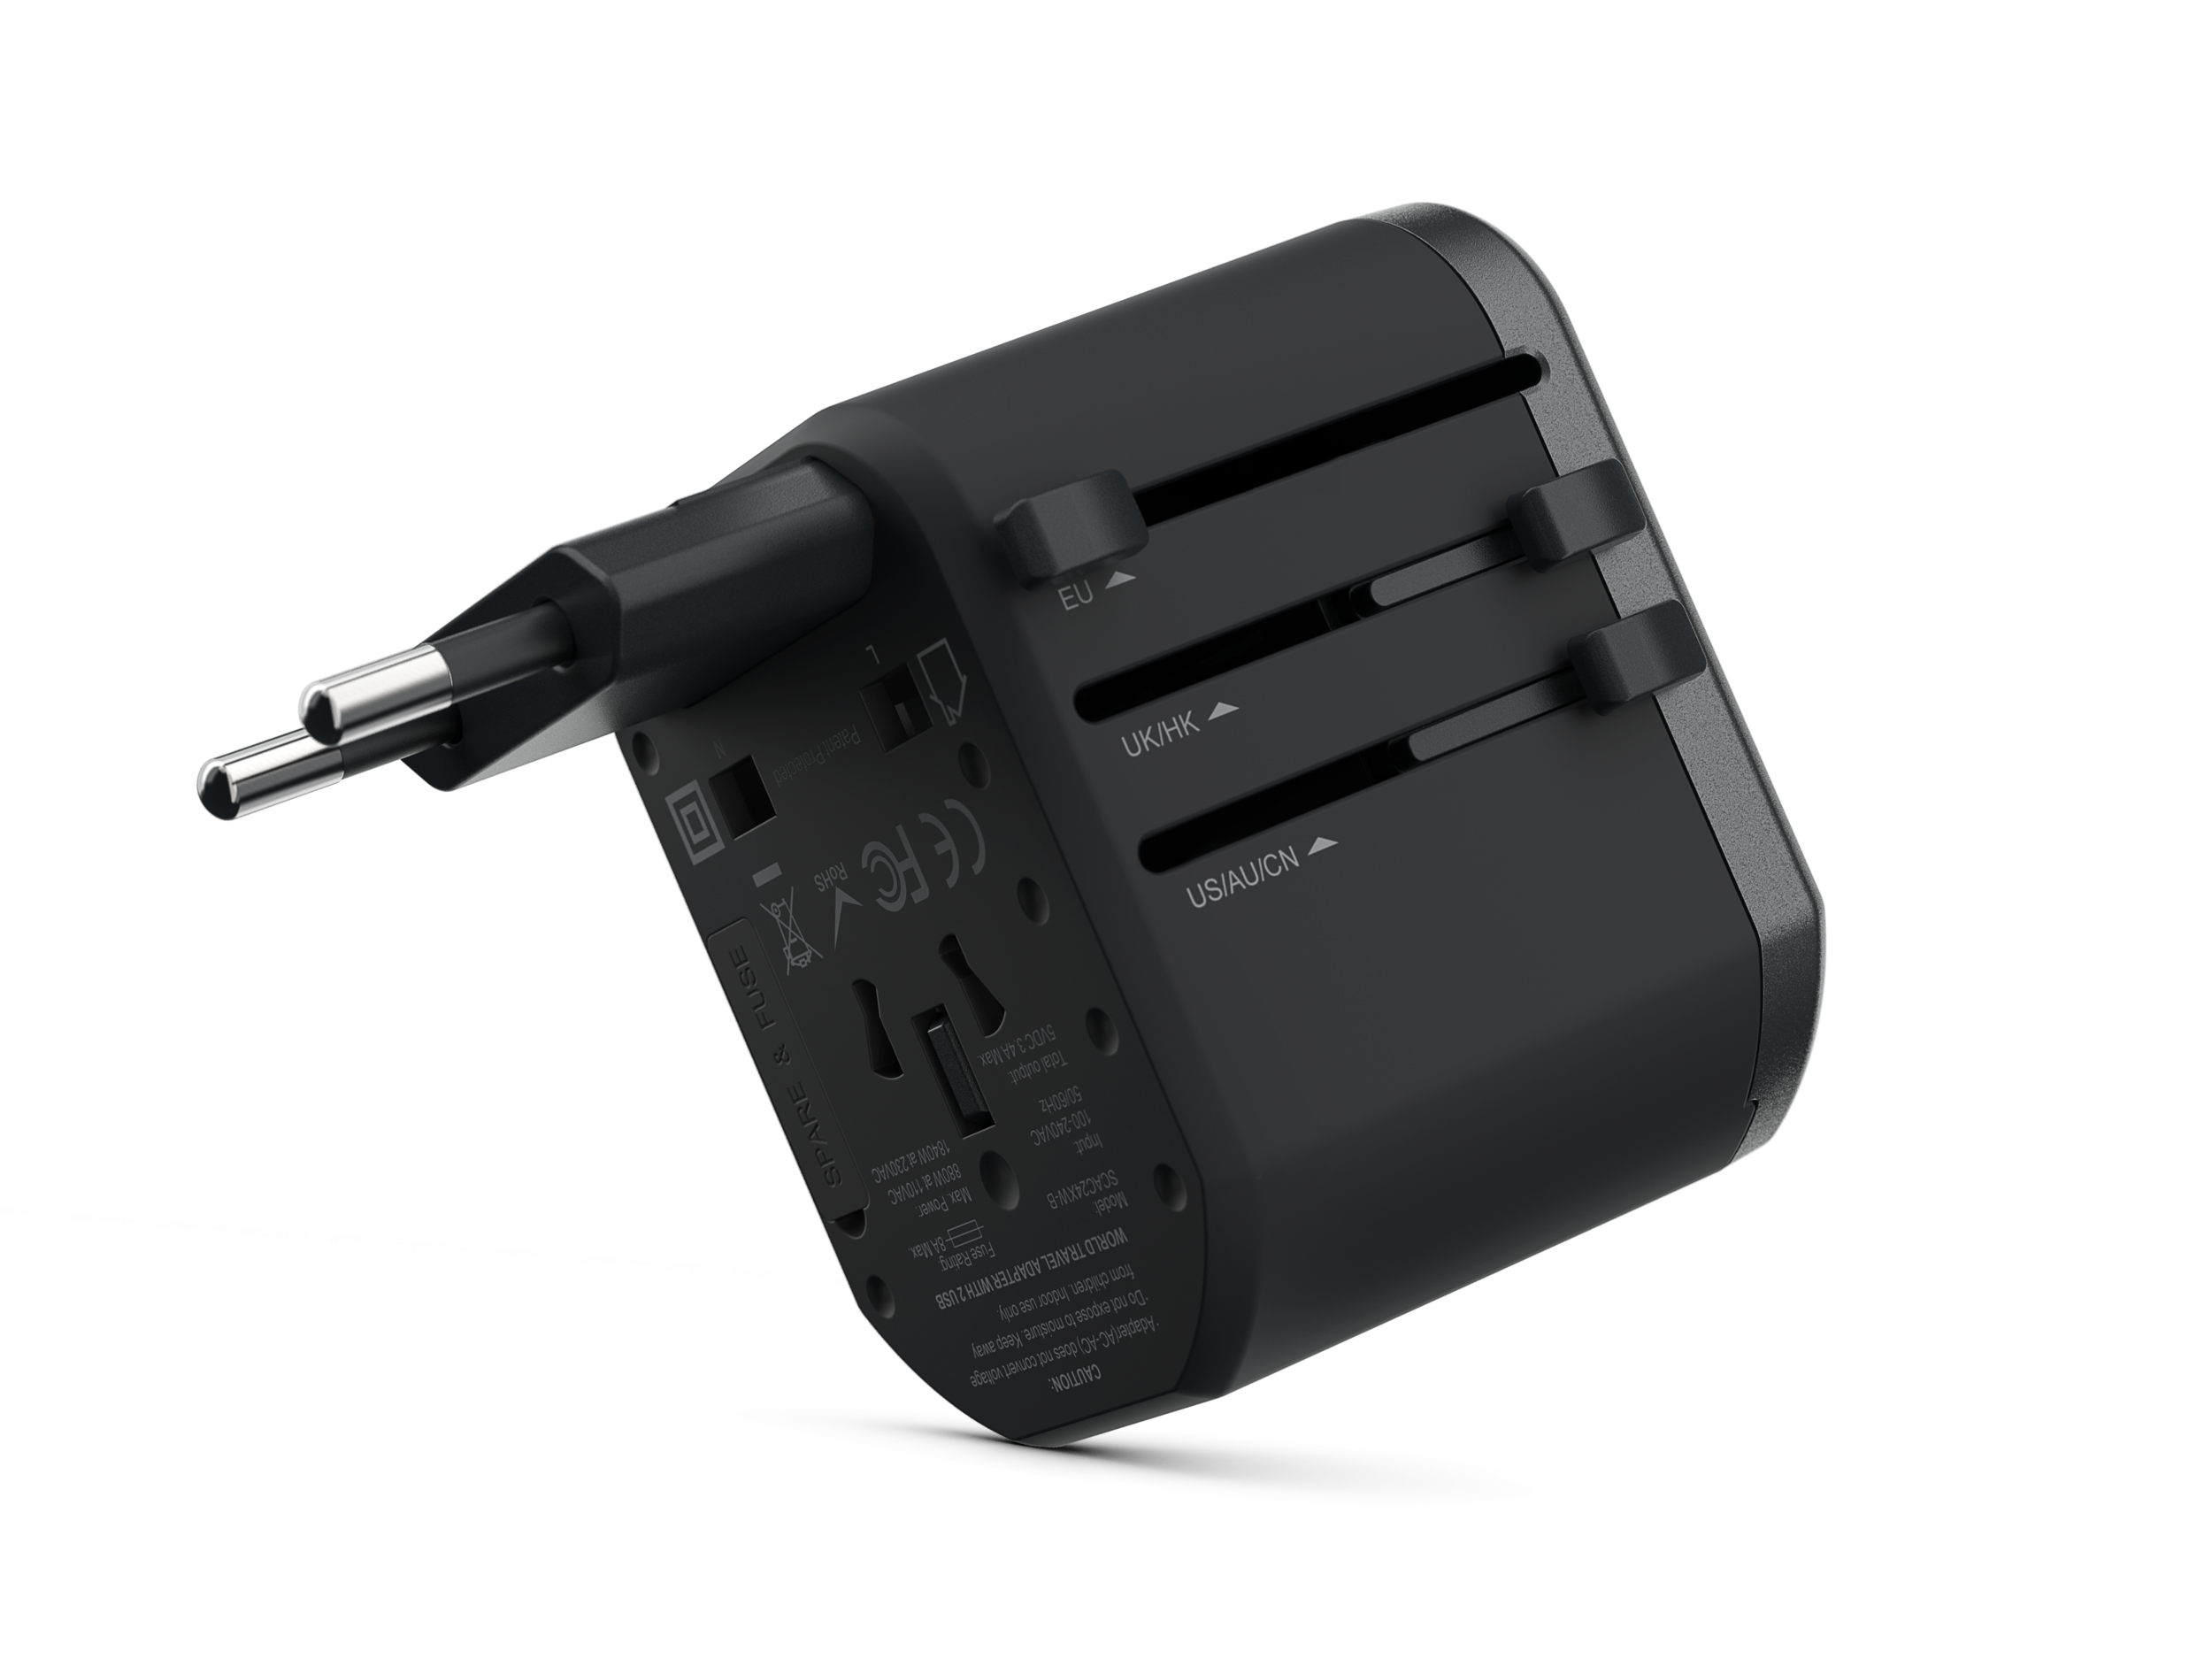 Universal Travel Adapter Dual Port USB-A - The Universal Travel Adapter Dual Port USB-A is our most compact design. It is designed for savvy travelers who have 1-2 portable devices to charge, plus a laptop to plug in.